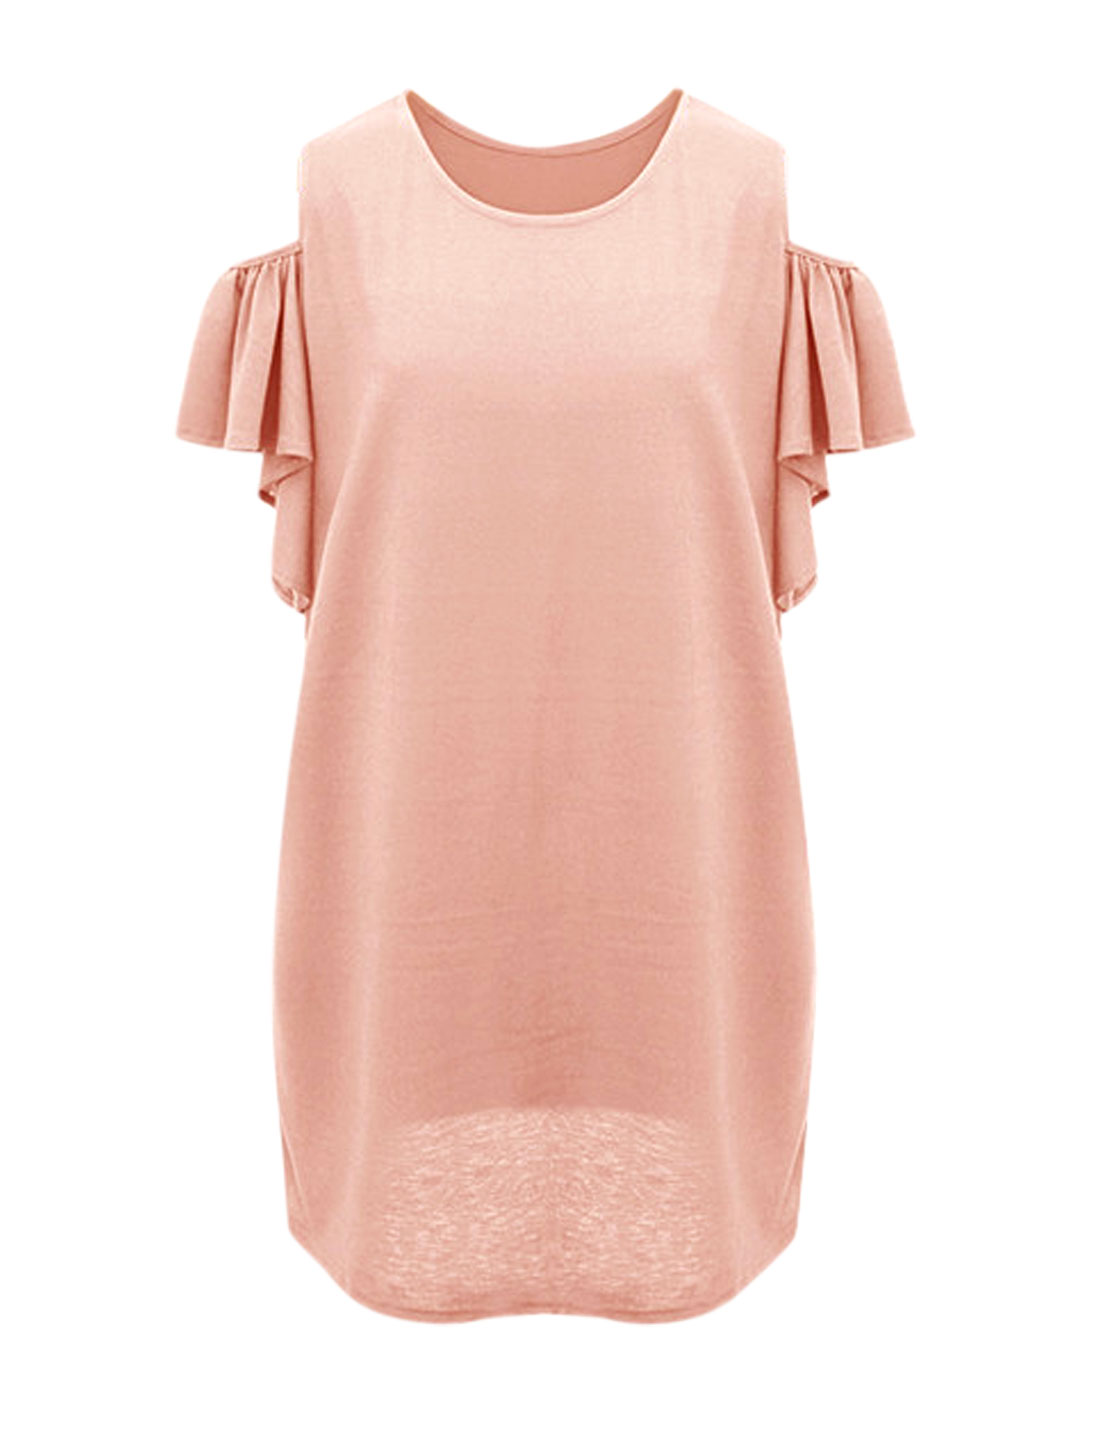 Lady Bell Sleeve Unlined Cut Out Shoulder Dress Pale Pink M